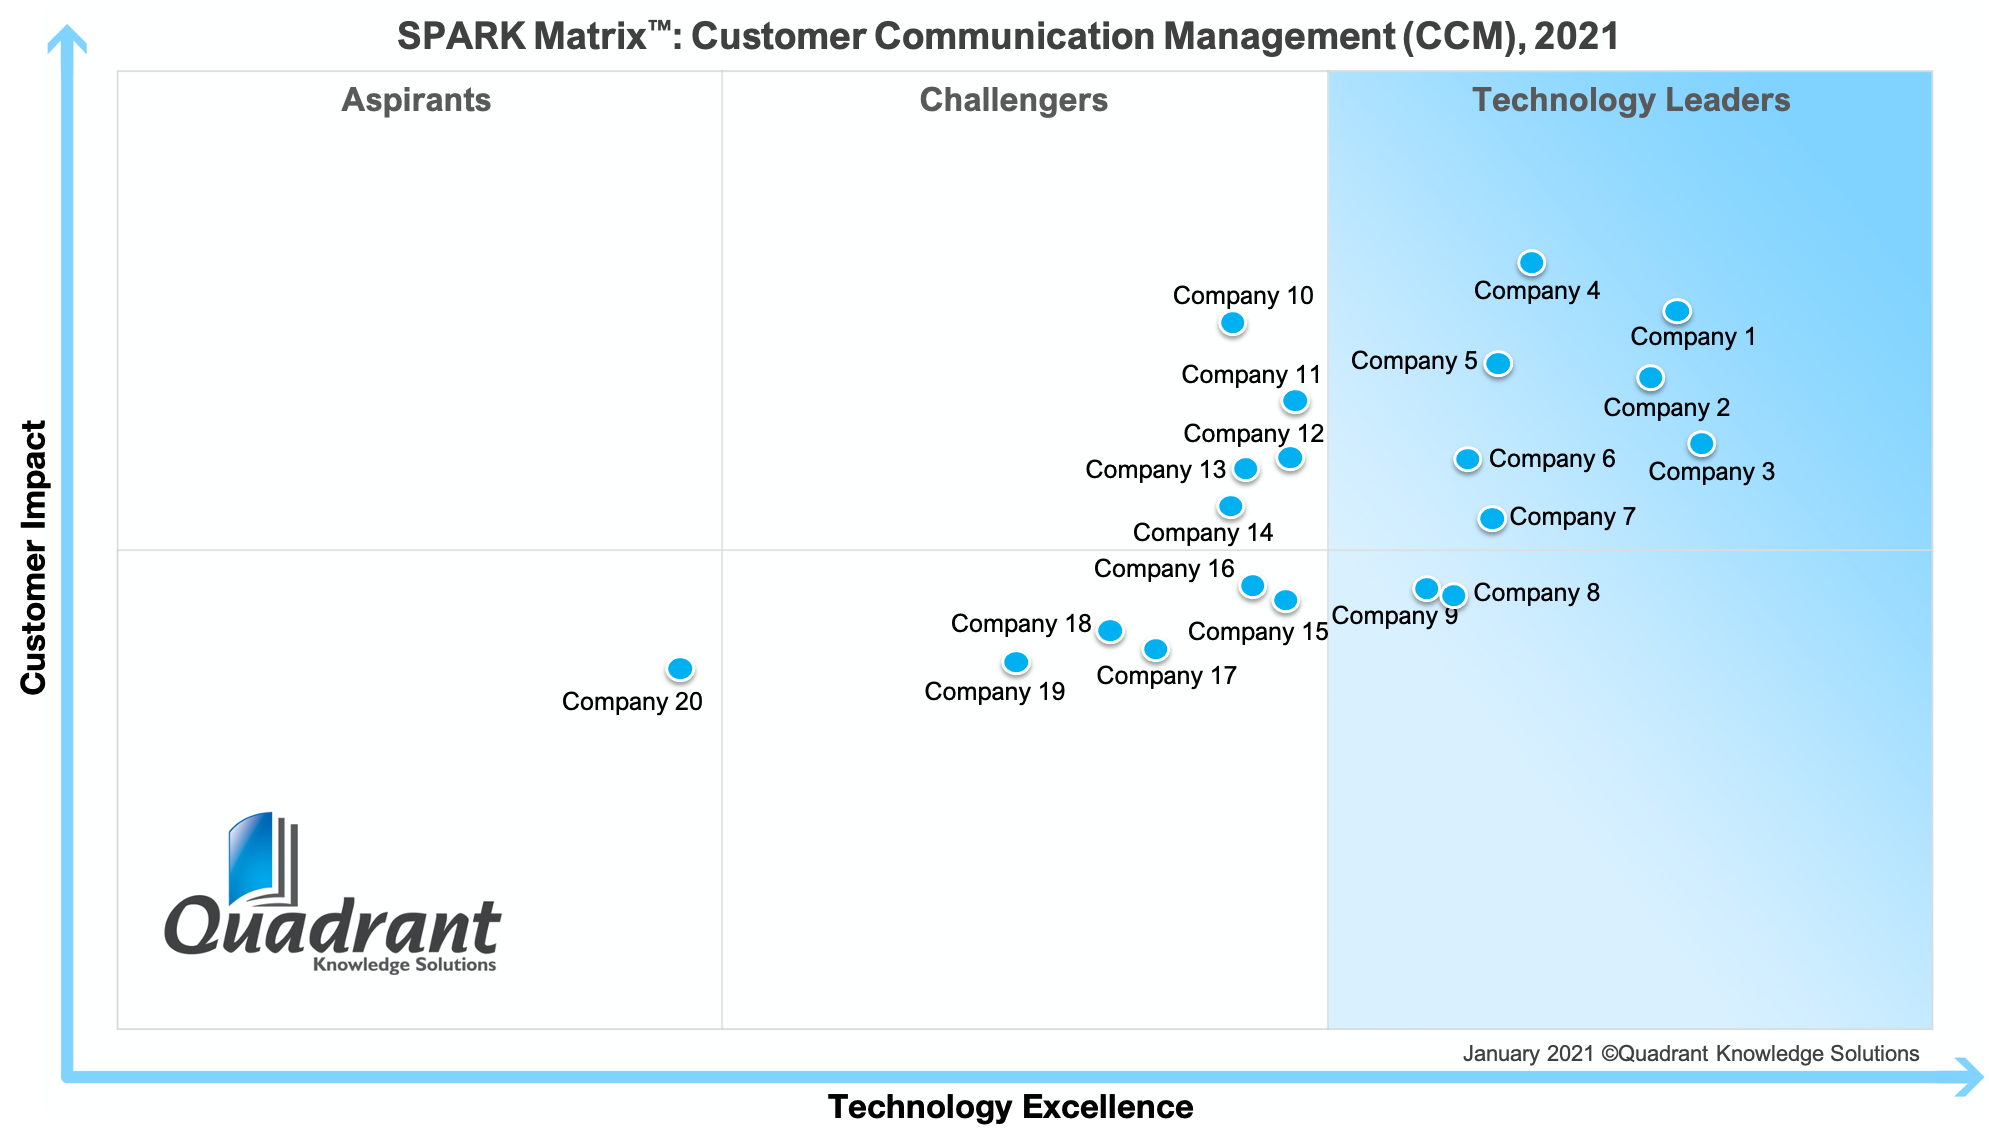 2020 SPARK Matrix Customer Communication Management Quadrant Knowledge Solutions